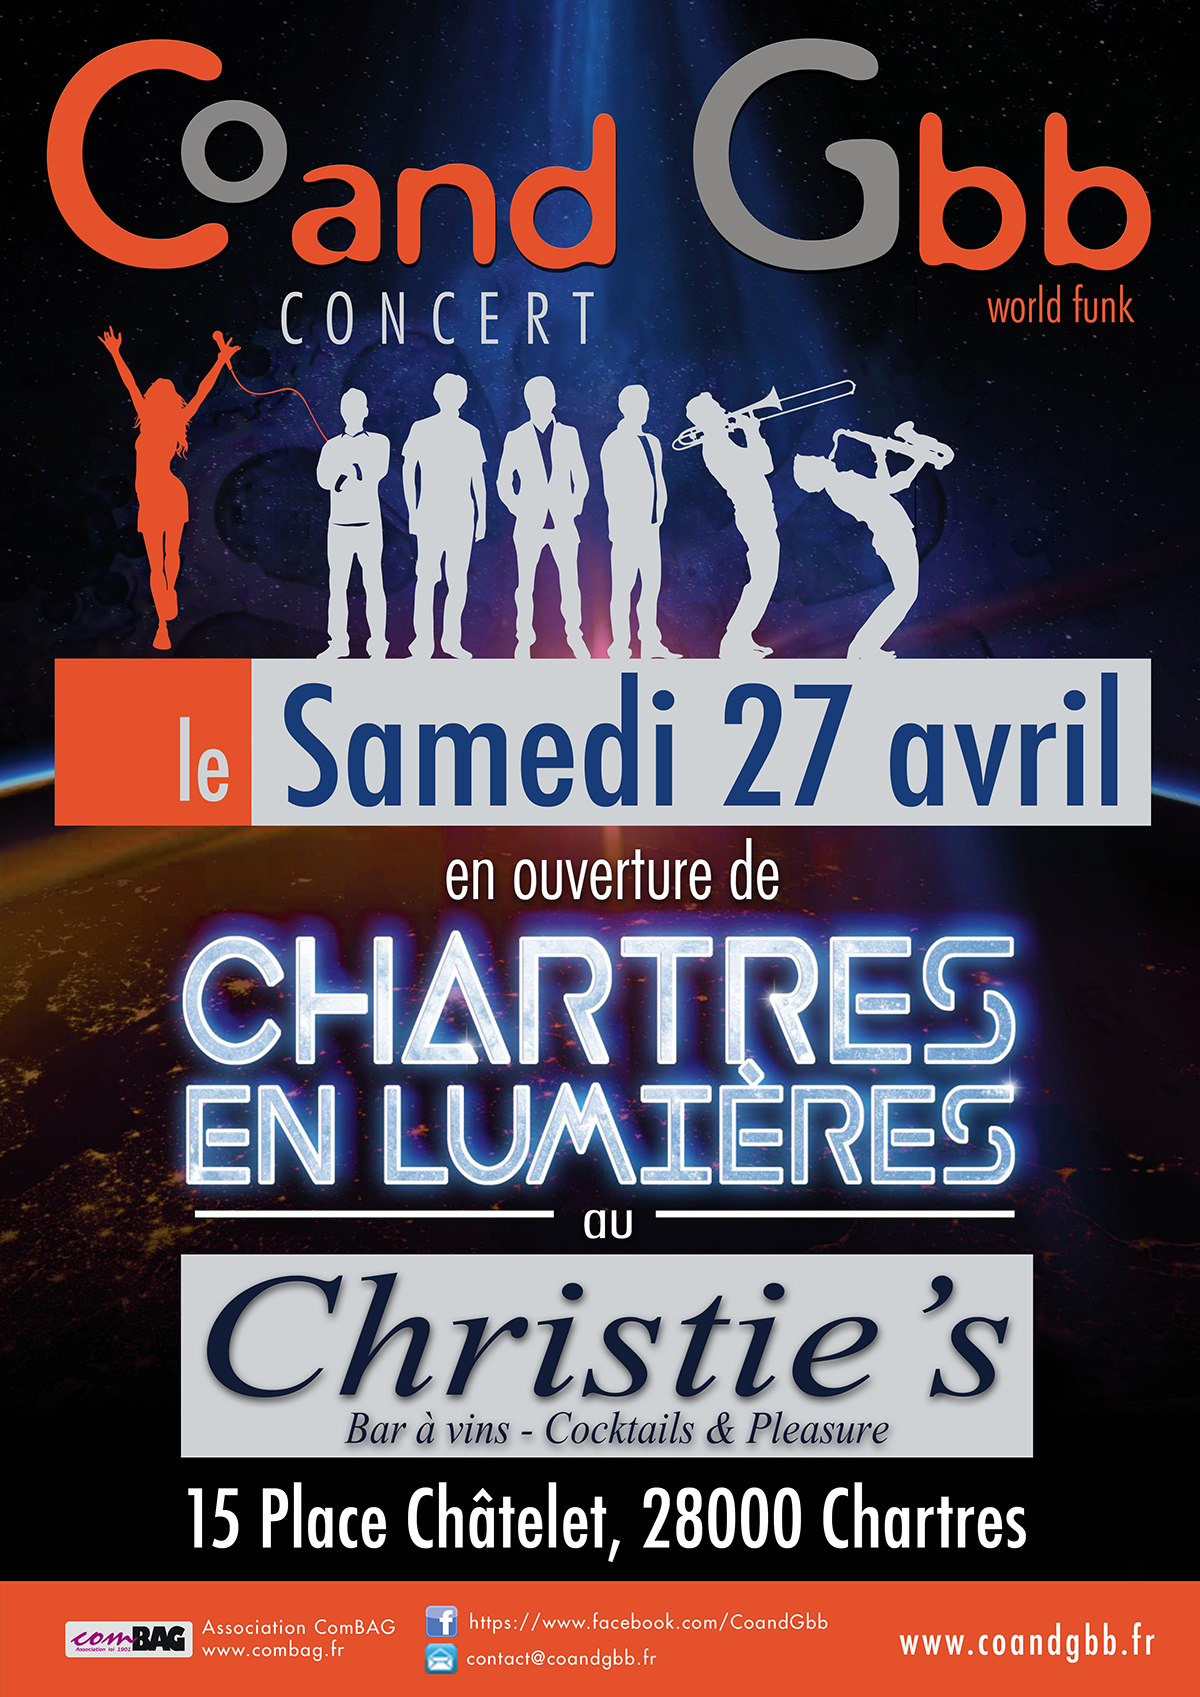 Concert 27 avril 2019 - CHRISTIE'S / CHARTRES